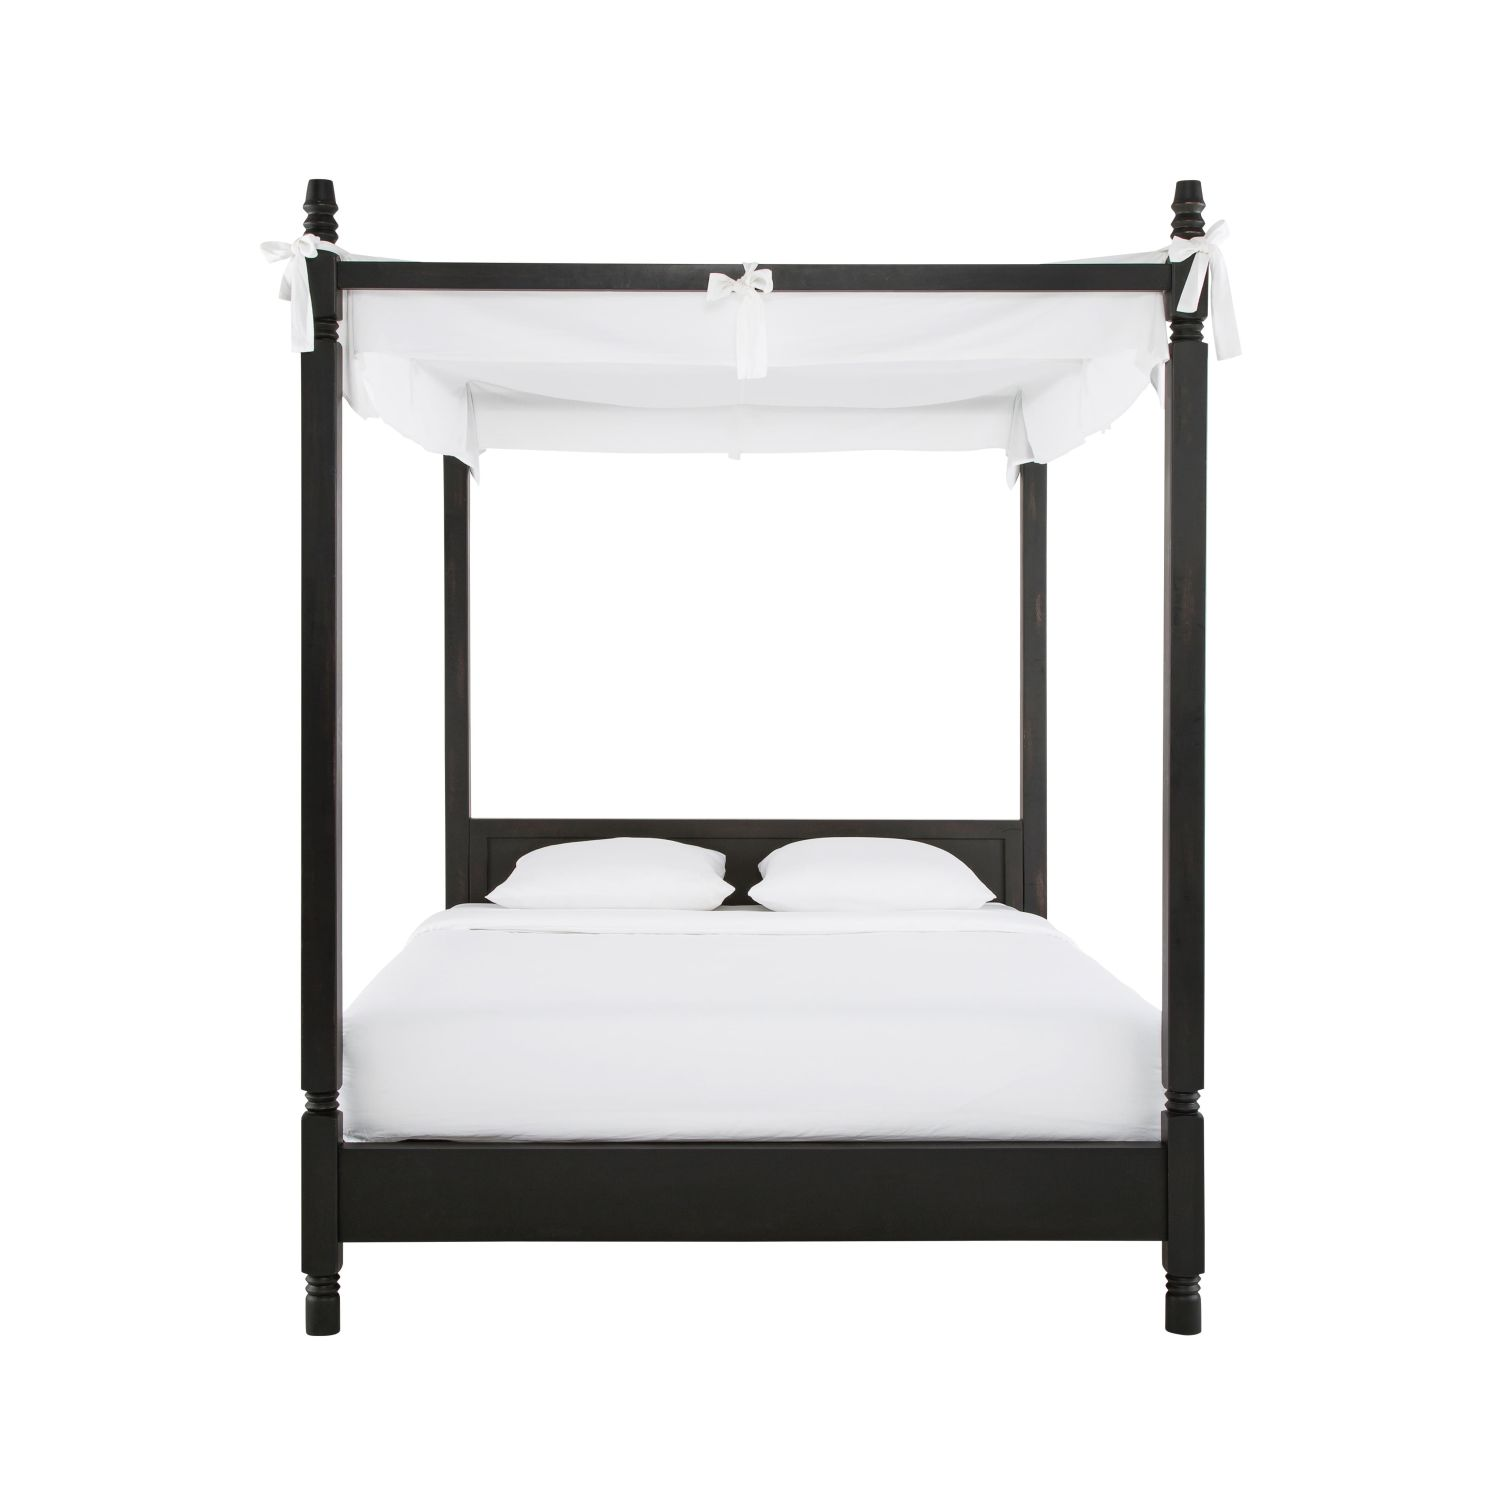 lit baldaquin 160x200 en manguier massif maisons du monde. Black Bedroom Furniture Sets. Home Design Ideas